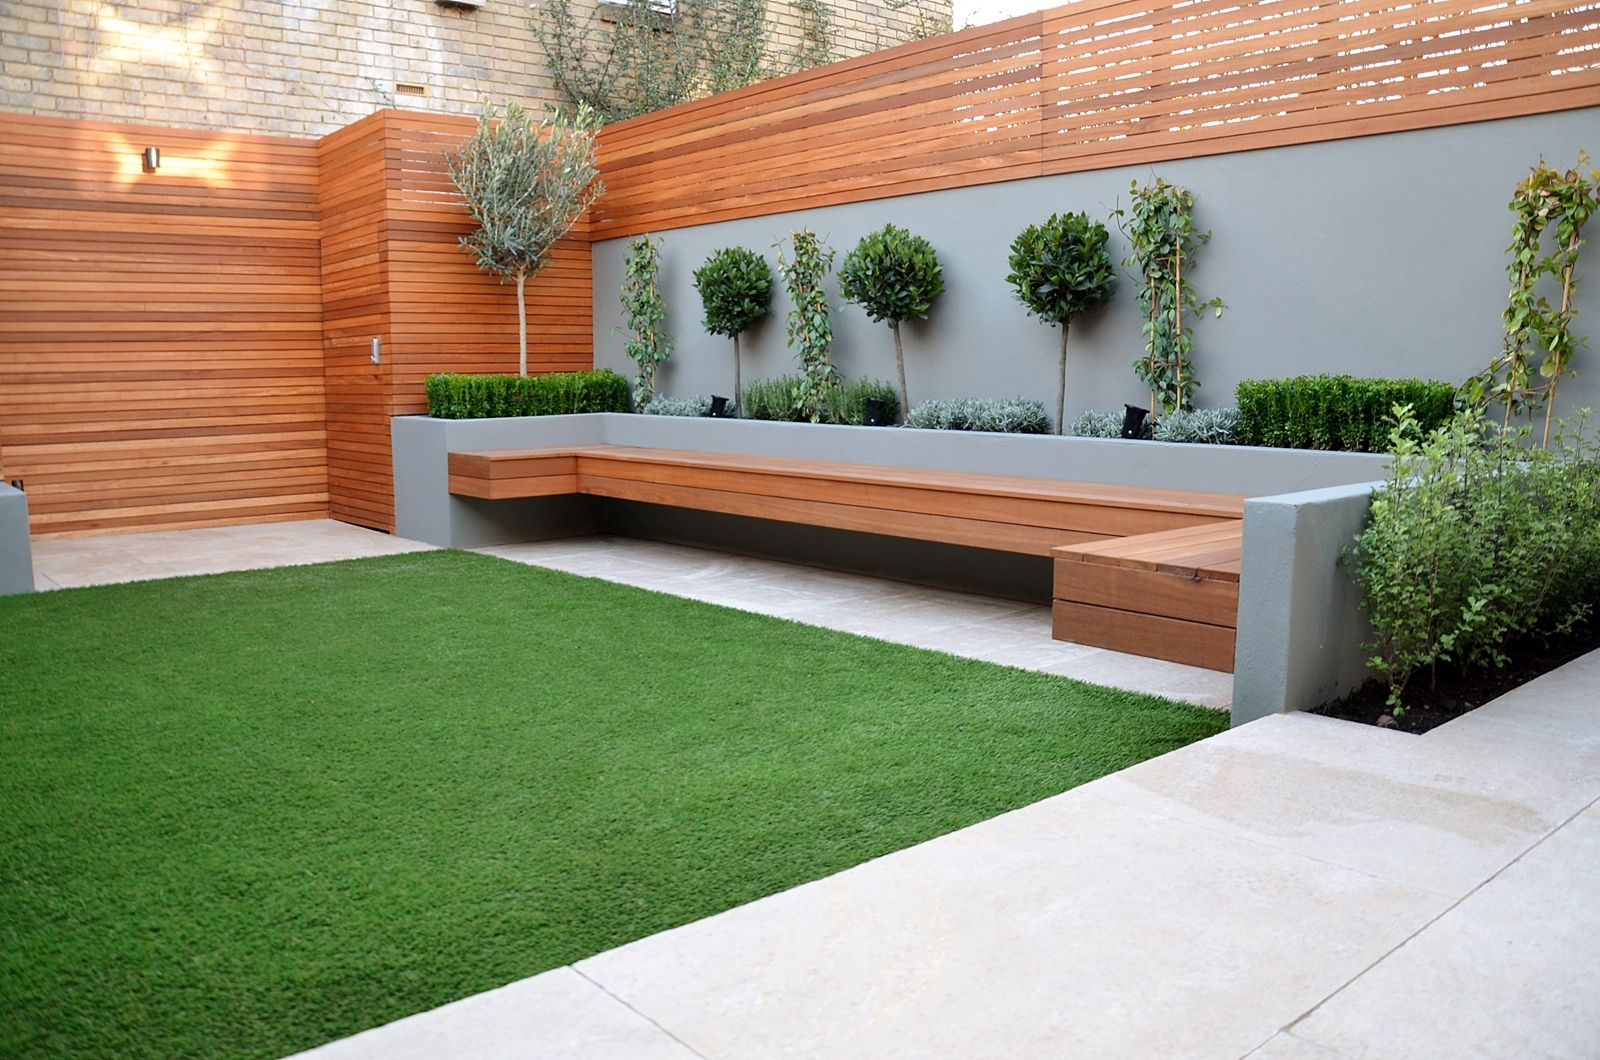 Incroyable Modern Low Maintenance Garden Design Clapham London Designed By Anewgarden